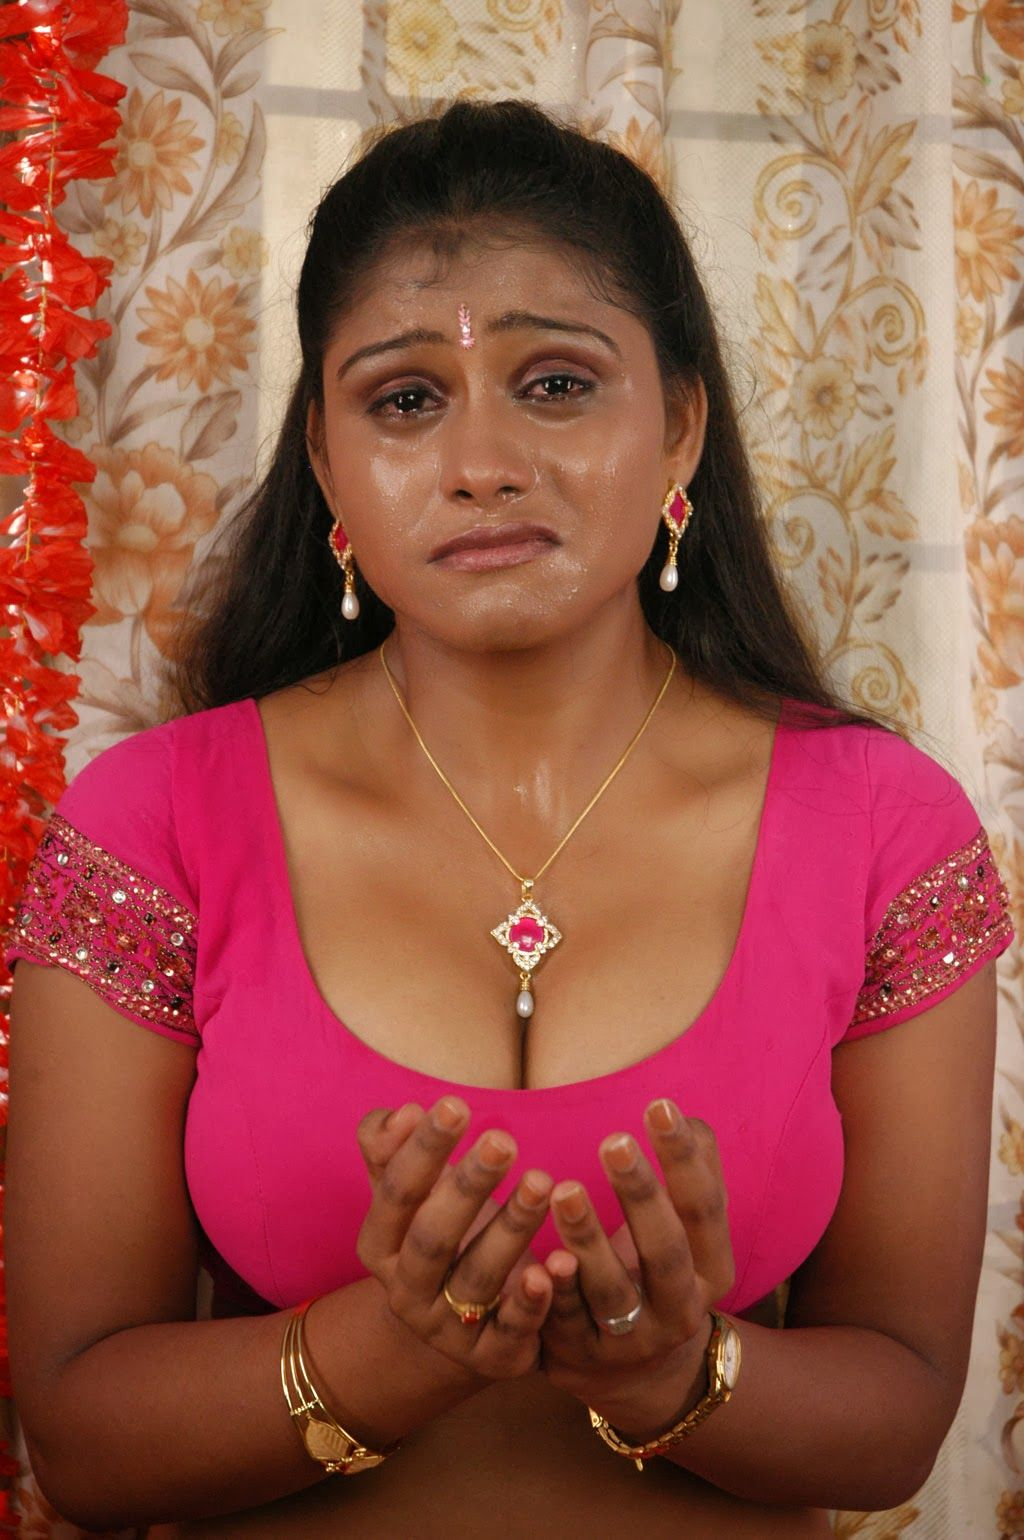 Sexy South Actress Rape Seen Stillhot Rape Seen Stillb Grade Movie Hot Stillboobs Press While Rape Seensexy Cleavage Expose Of Beautiful Actress